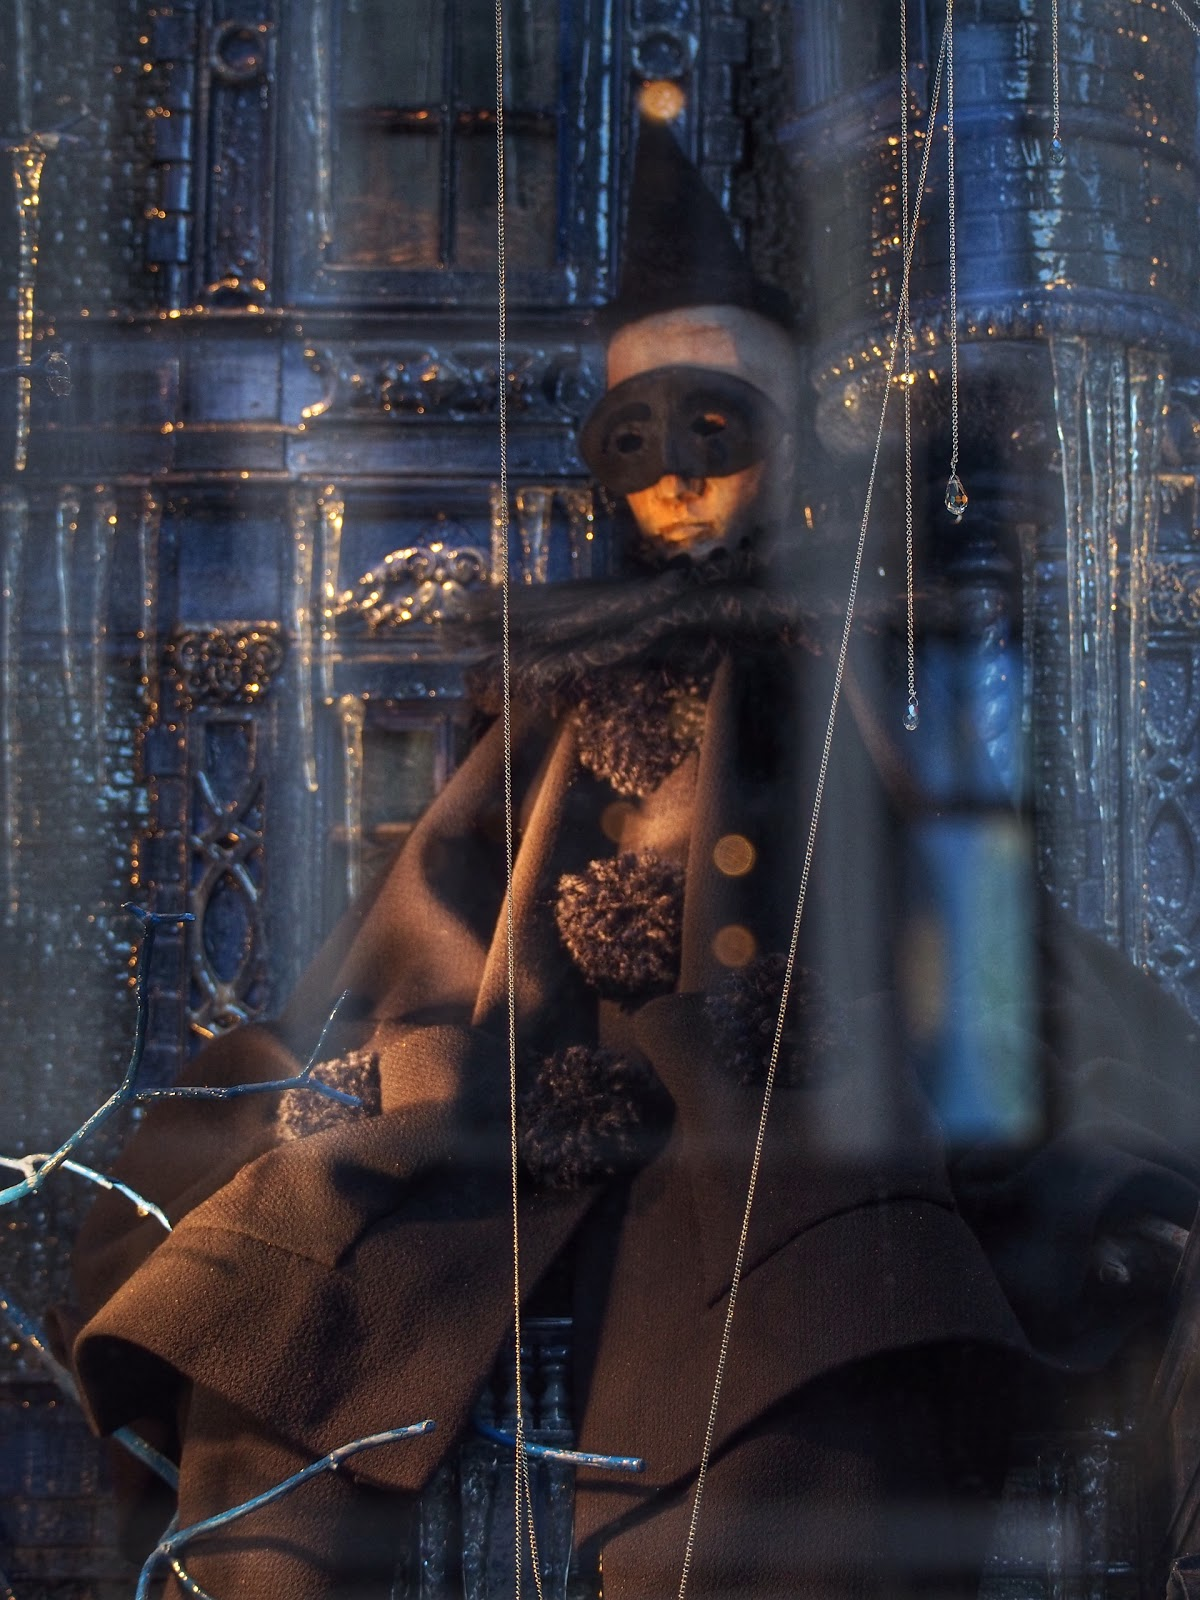 Cloaked and Masked #BGWindows #HolidaysonIce #5thaveueholidaywindows #NYC 2013